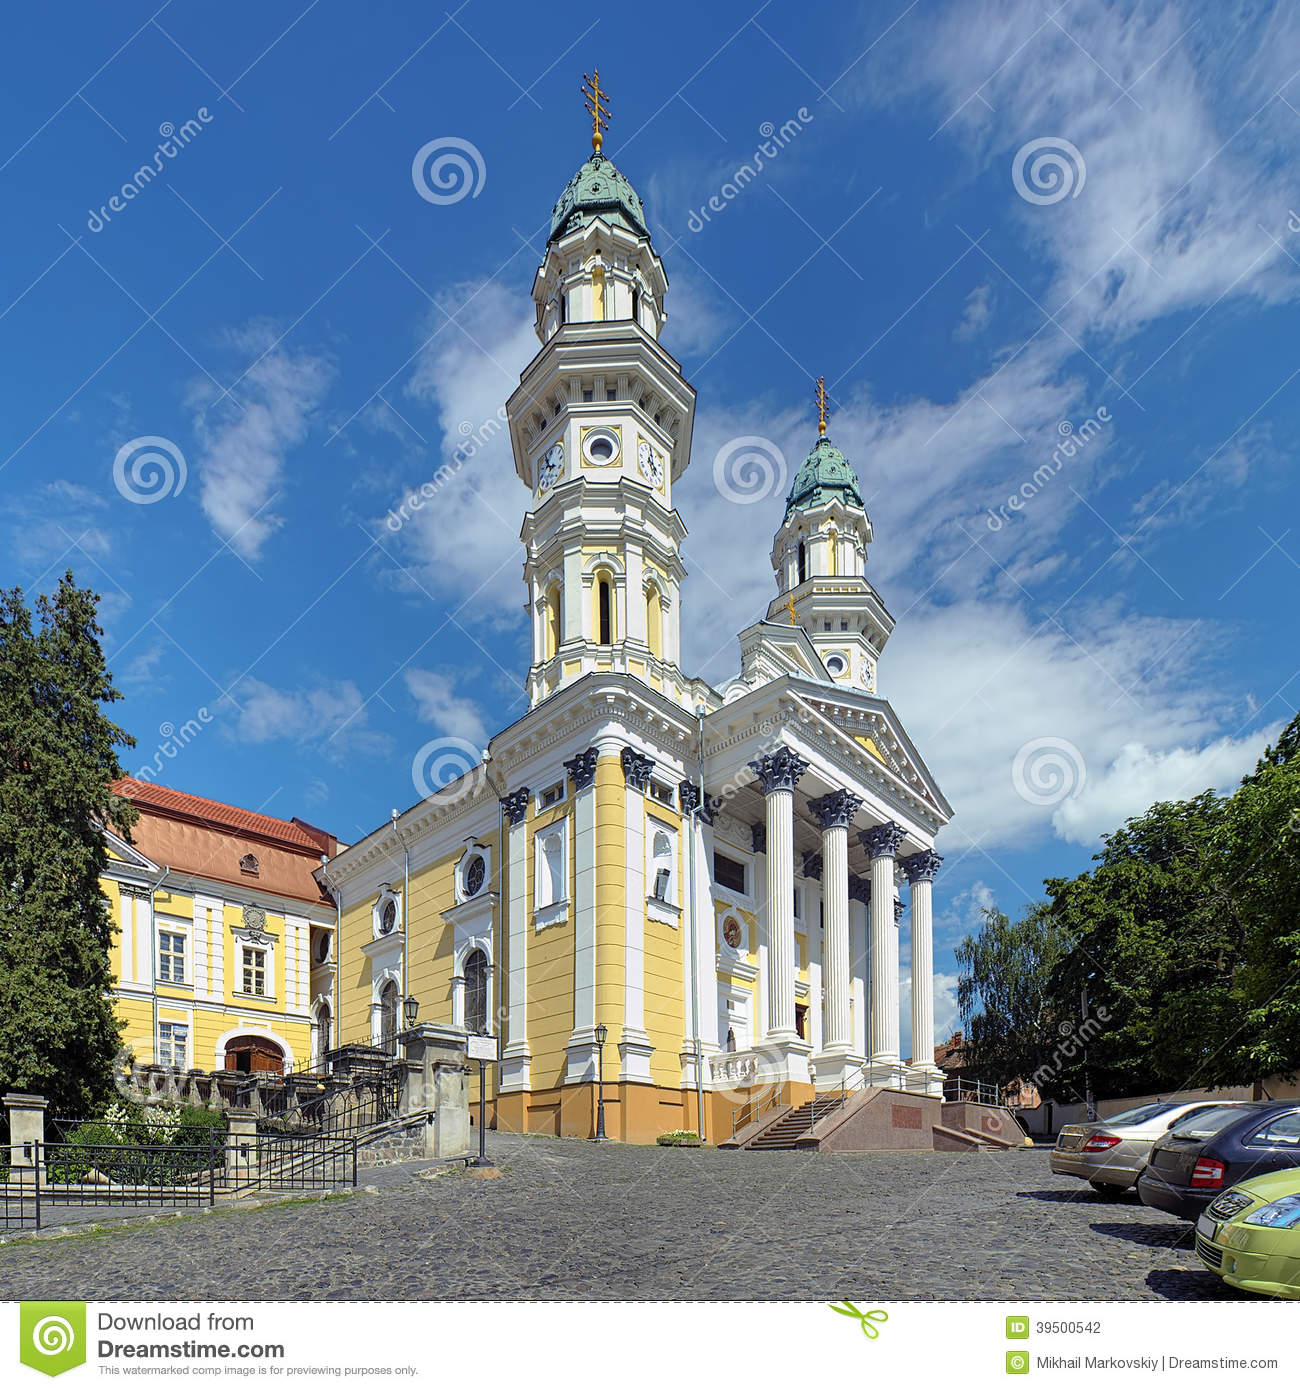 Holy Cross Cathedral in Uzhhorod, Ukraine